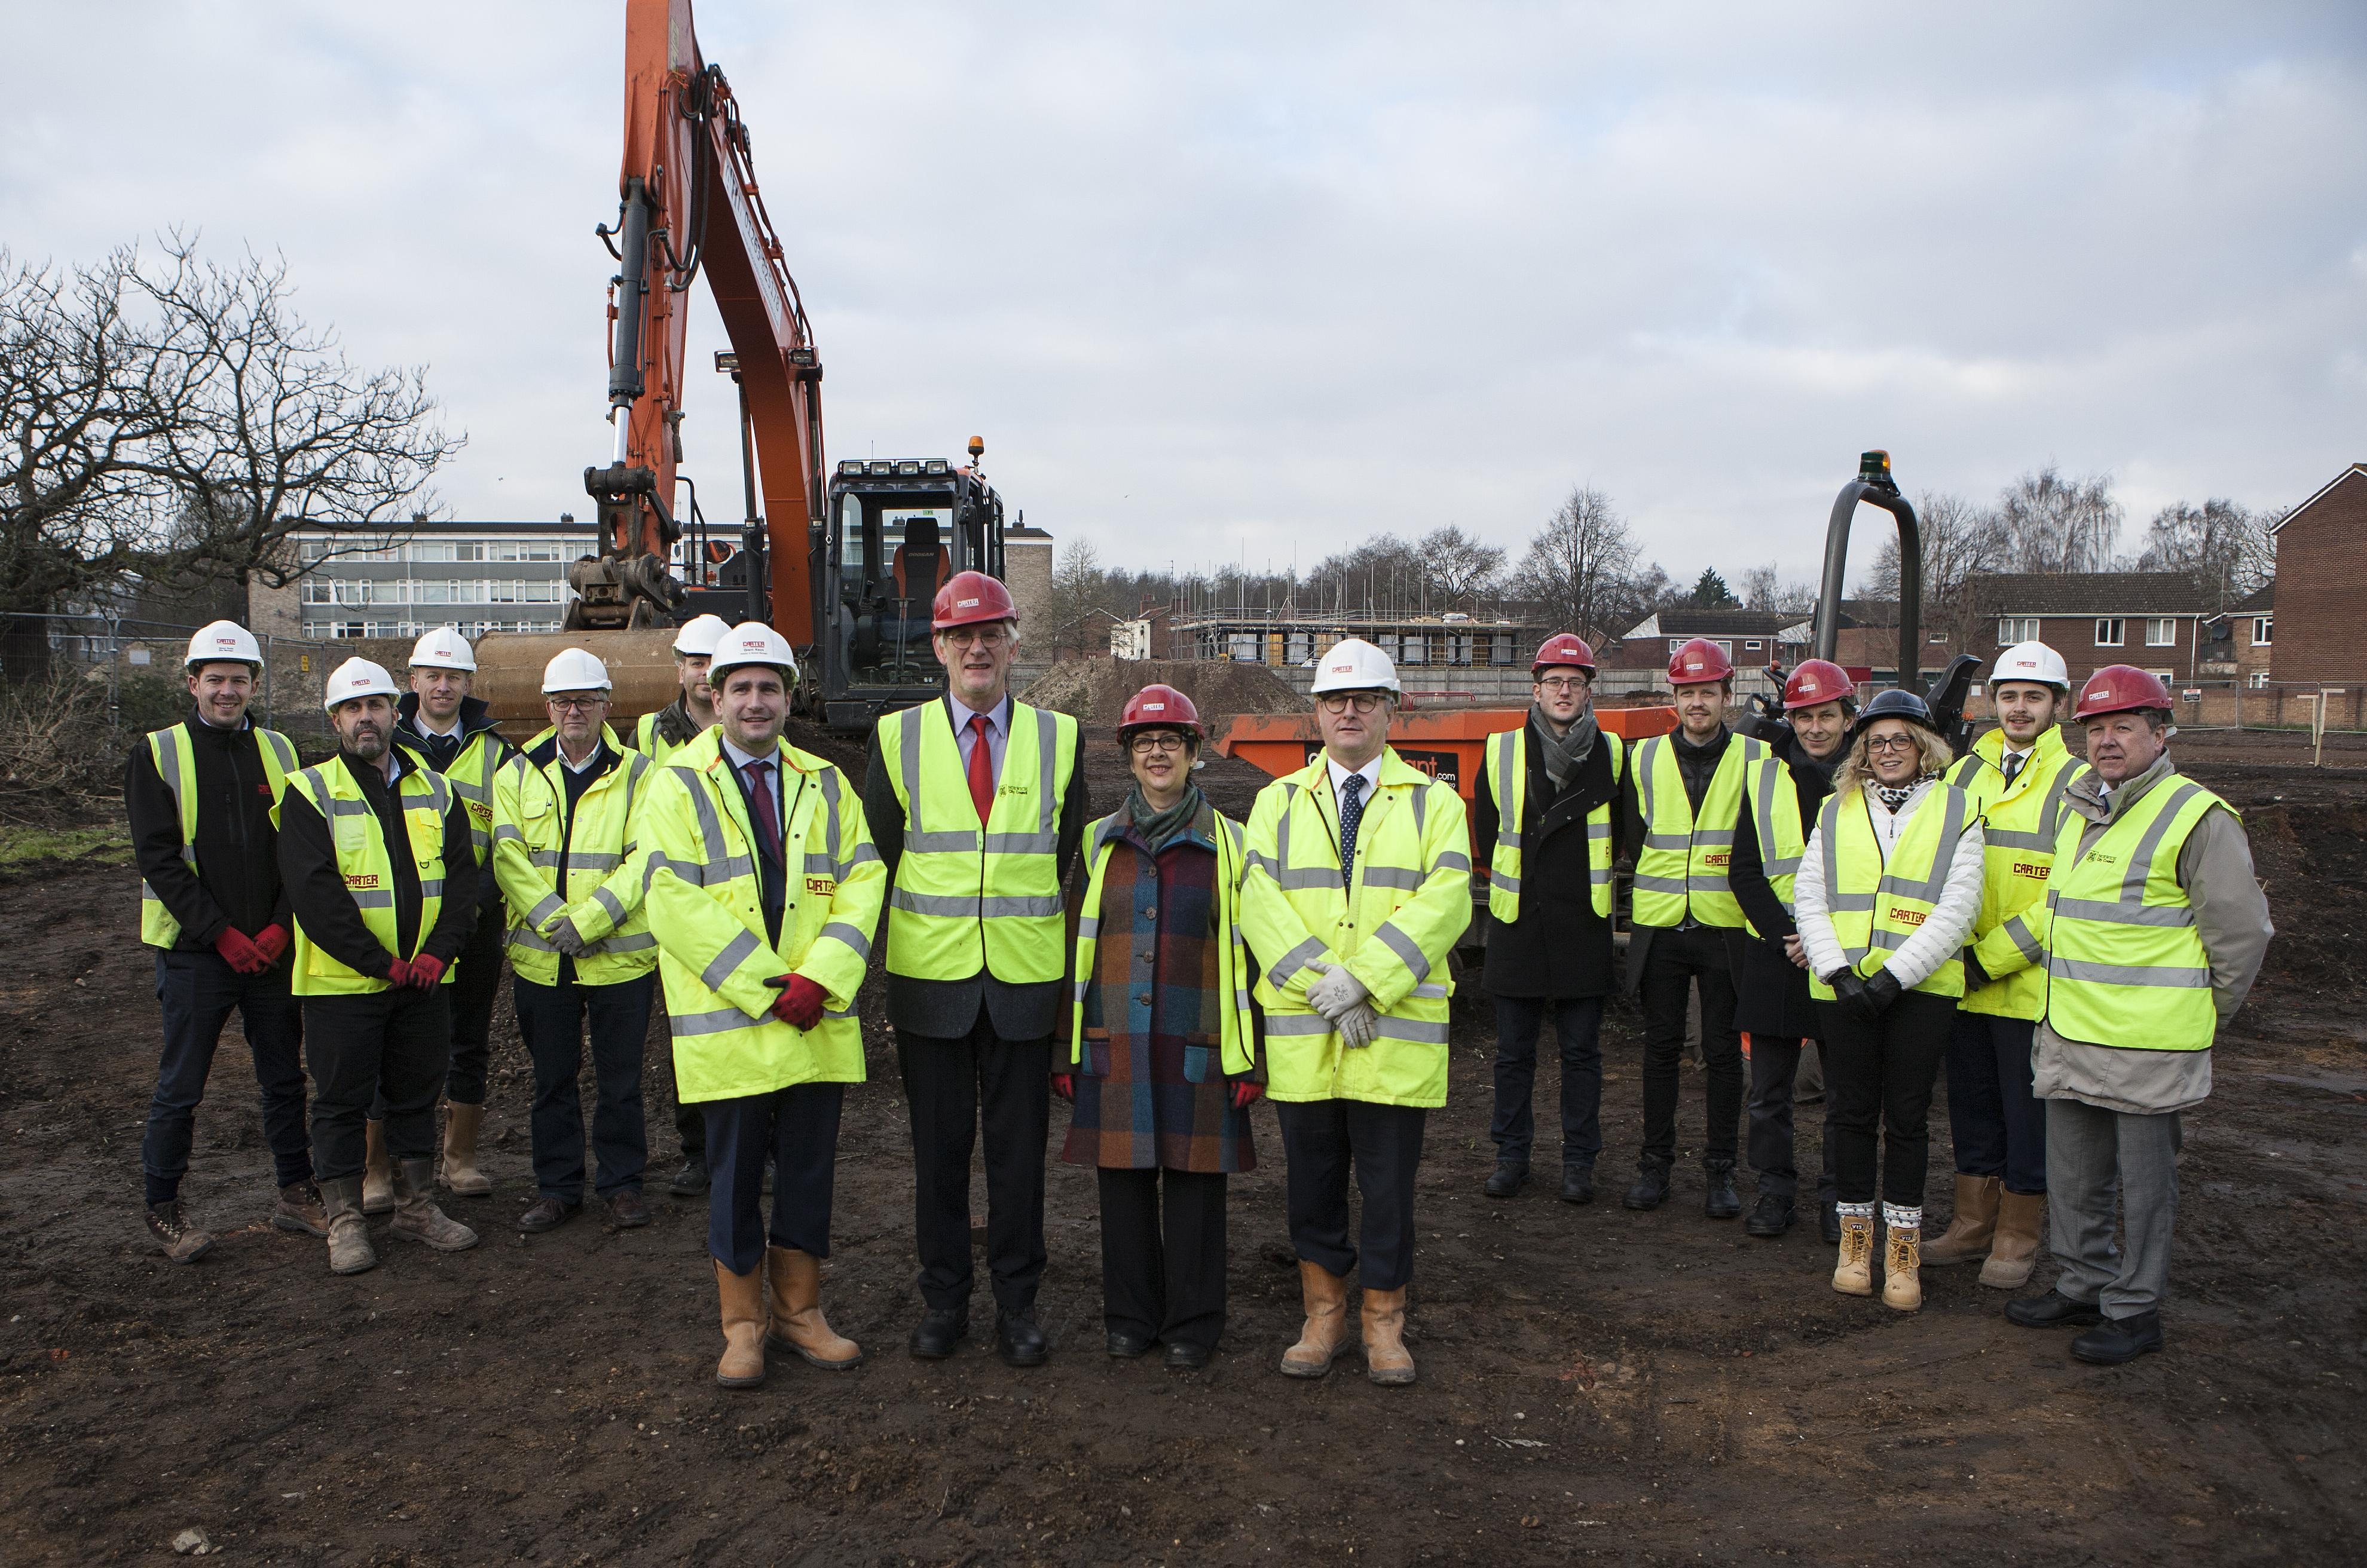 Councillors and staff pictured at Goldsmith Street.